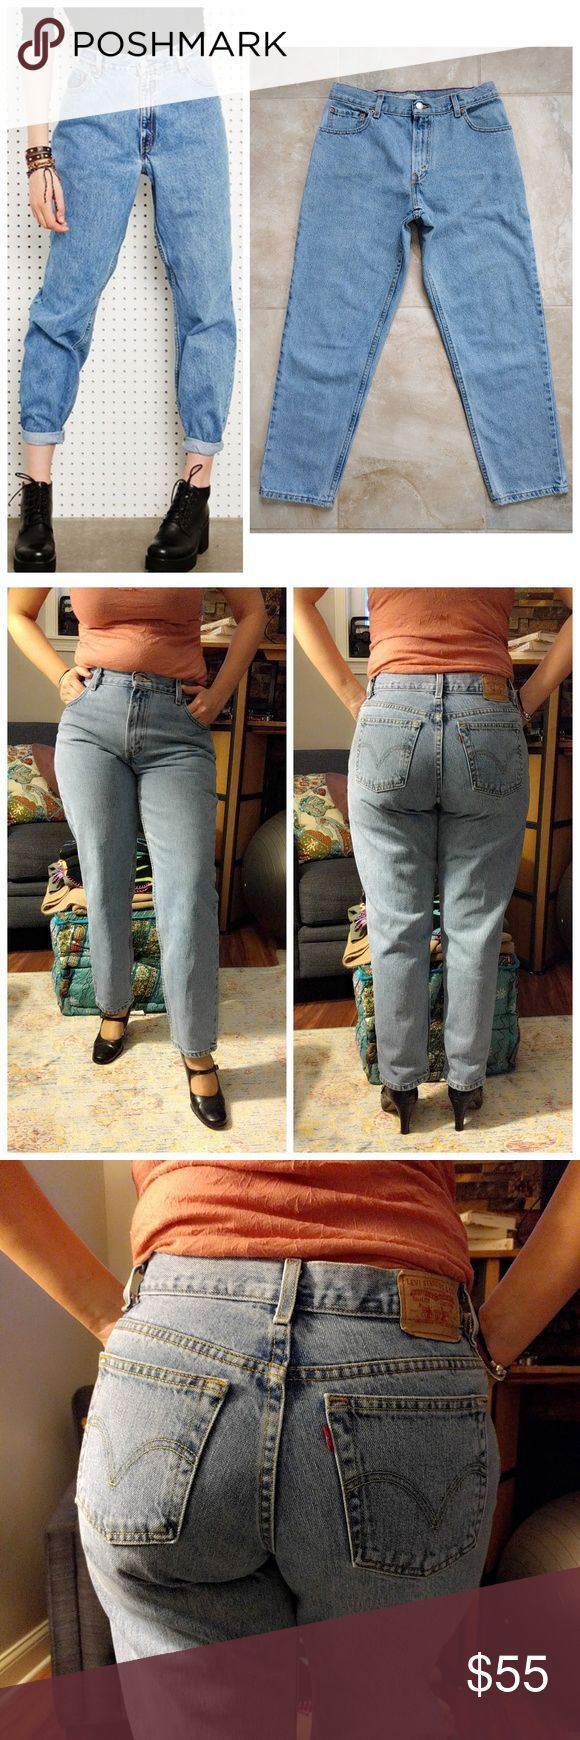 """Levis 550 High Waist Jeans 12S Light Wash W32 Introduced in 1985, the 550 is a relaxed version of the original 501 style. Today, they're the go-to classic for that chic vintage high-waist, mom silhouette. True vintage item from the 1990s.  In excellent vintage condition (9.99/10). No stains. Comes from a smoke-free home. True light blue (a vintage color that is hard to find today).  BRAND: Levi's 550. SIZE: 12S. WAIST: 32"""". RISE: 11"""". HIP: up to 40.5"""". INSEAM: 28"""". CUFF: 14"""". Vintage Jeans…"""